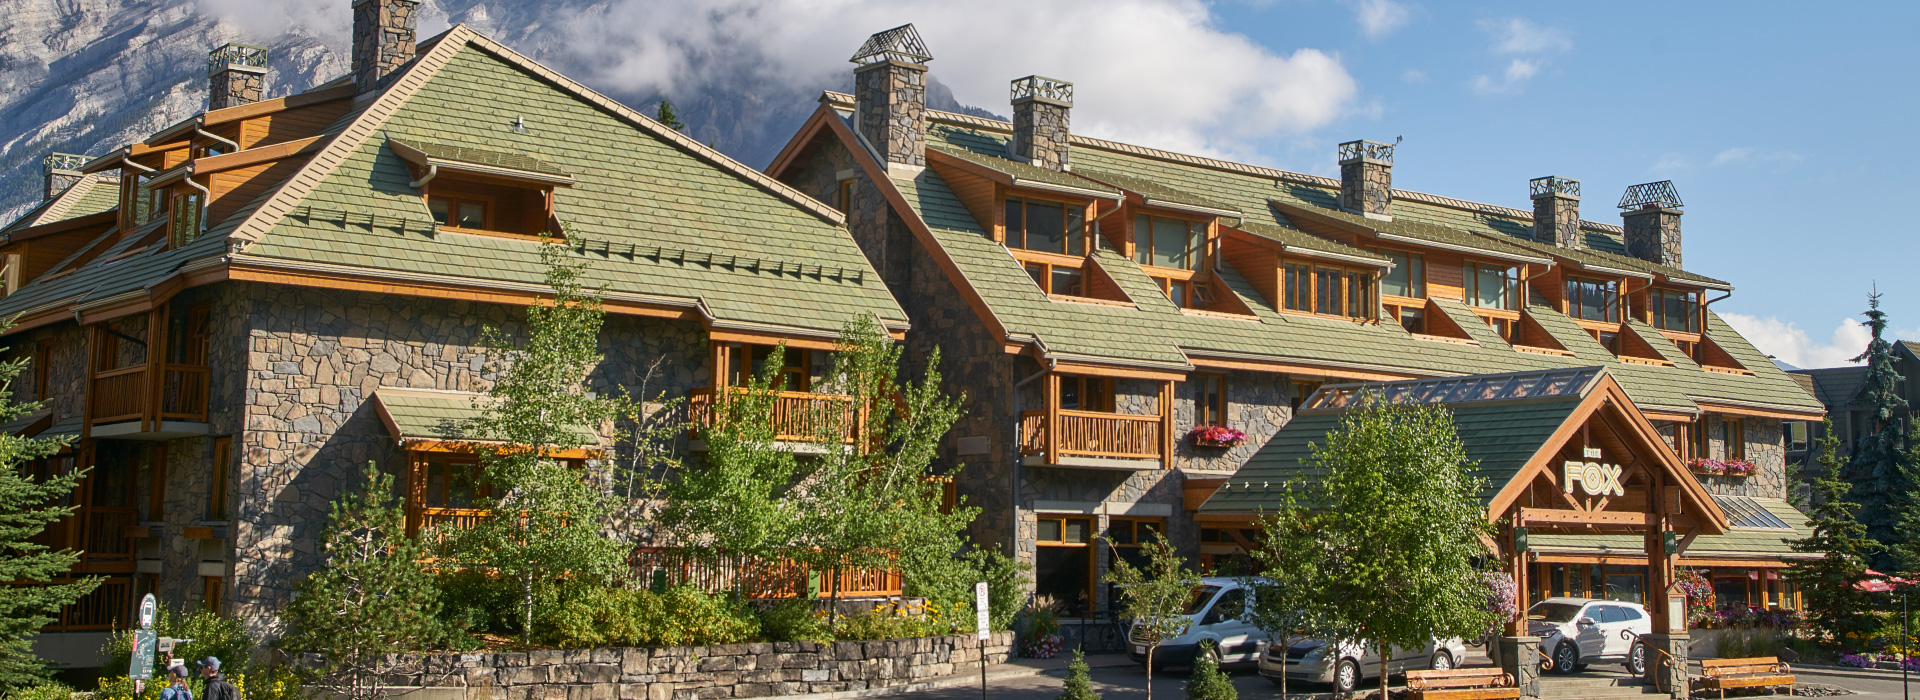 Fox Hotel And Suites Banff Tripadvisor